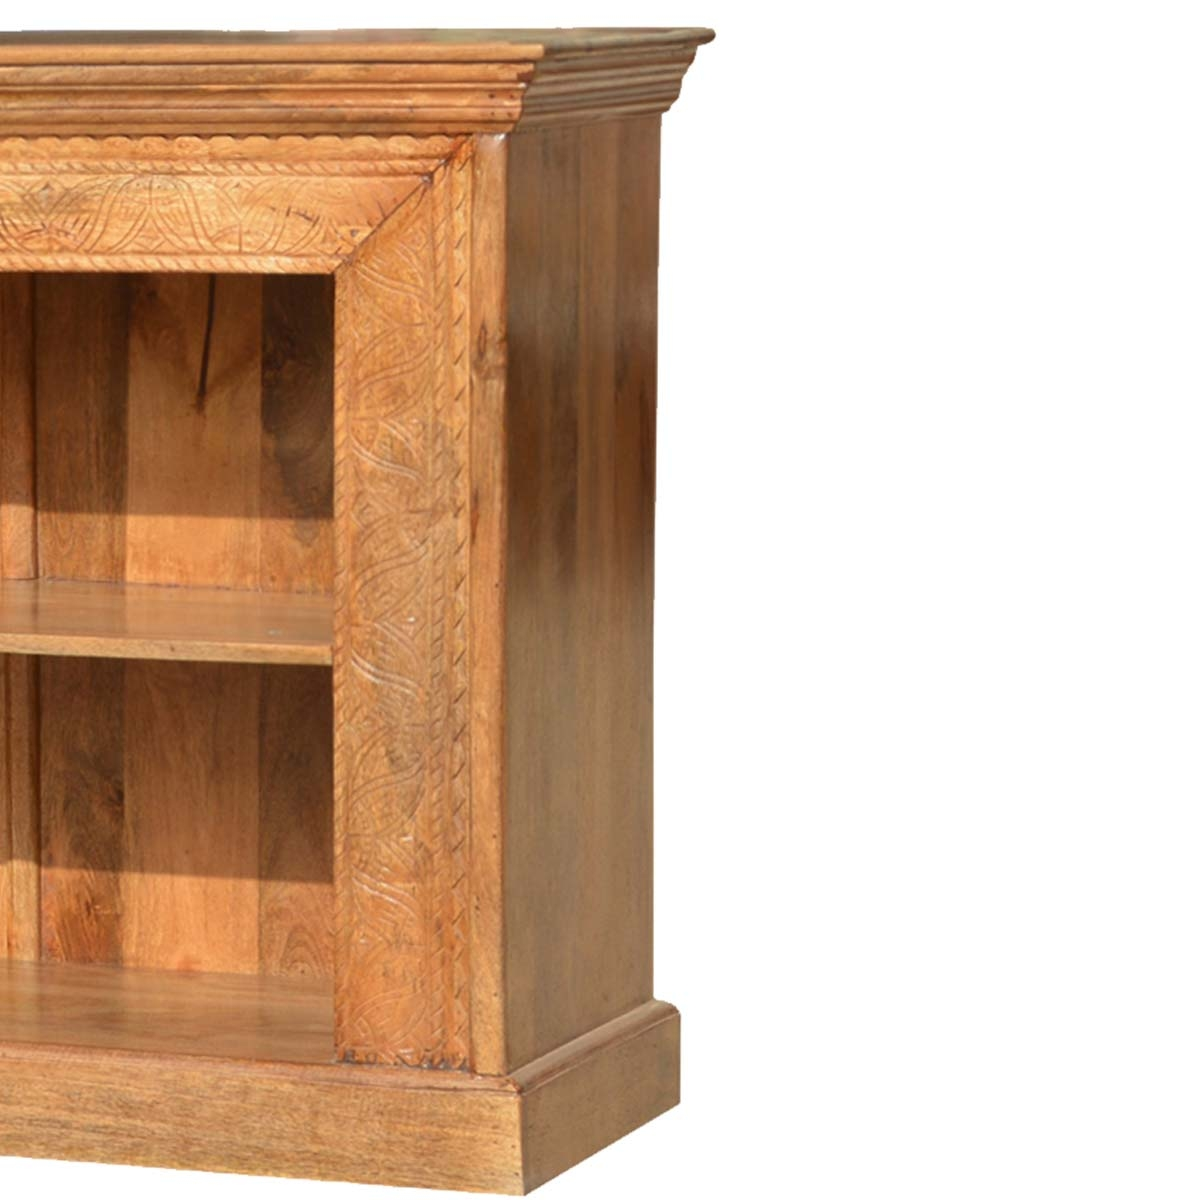 Large Hand Carved Solid Wood Bookcase 150 Long Tv Stand Media Pertaining To Large Solid Wood Bookcase (#10 of 15)